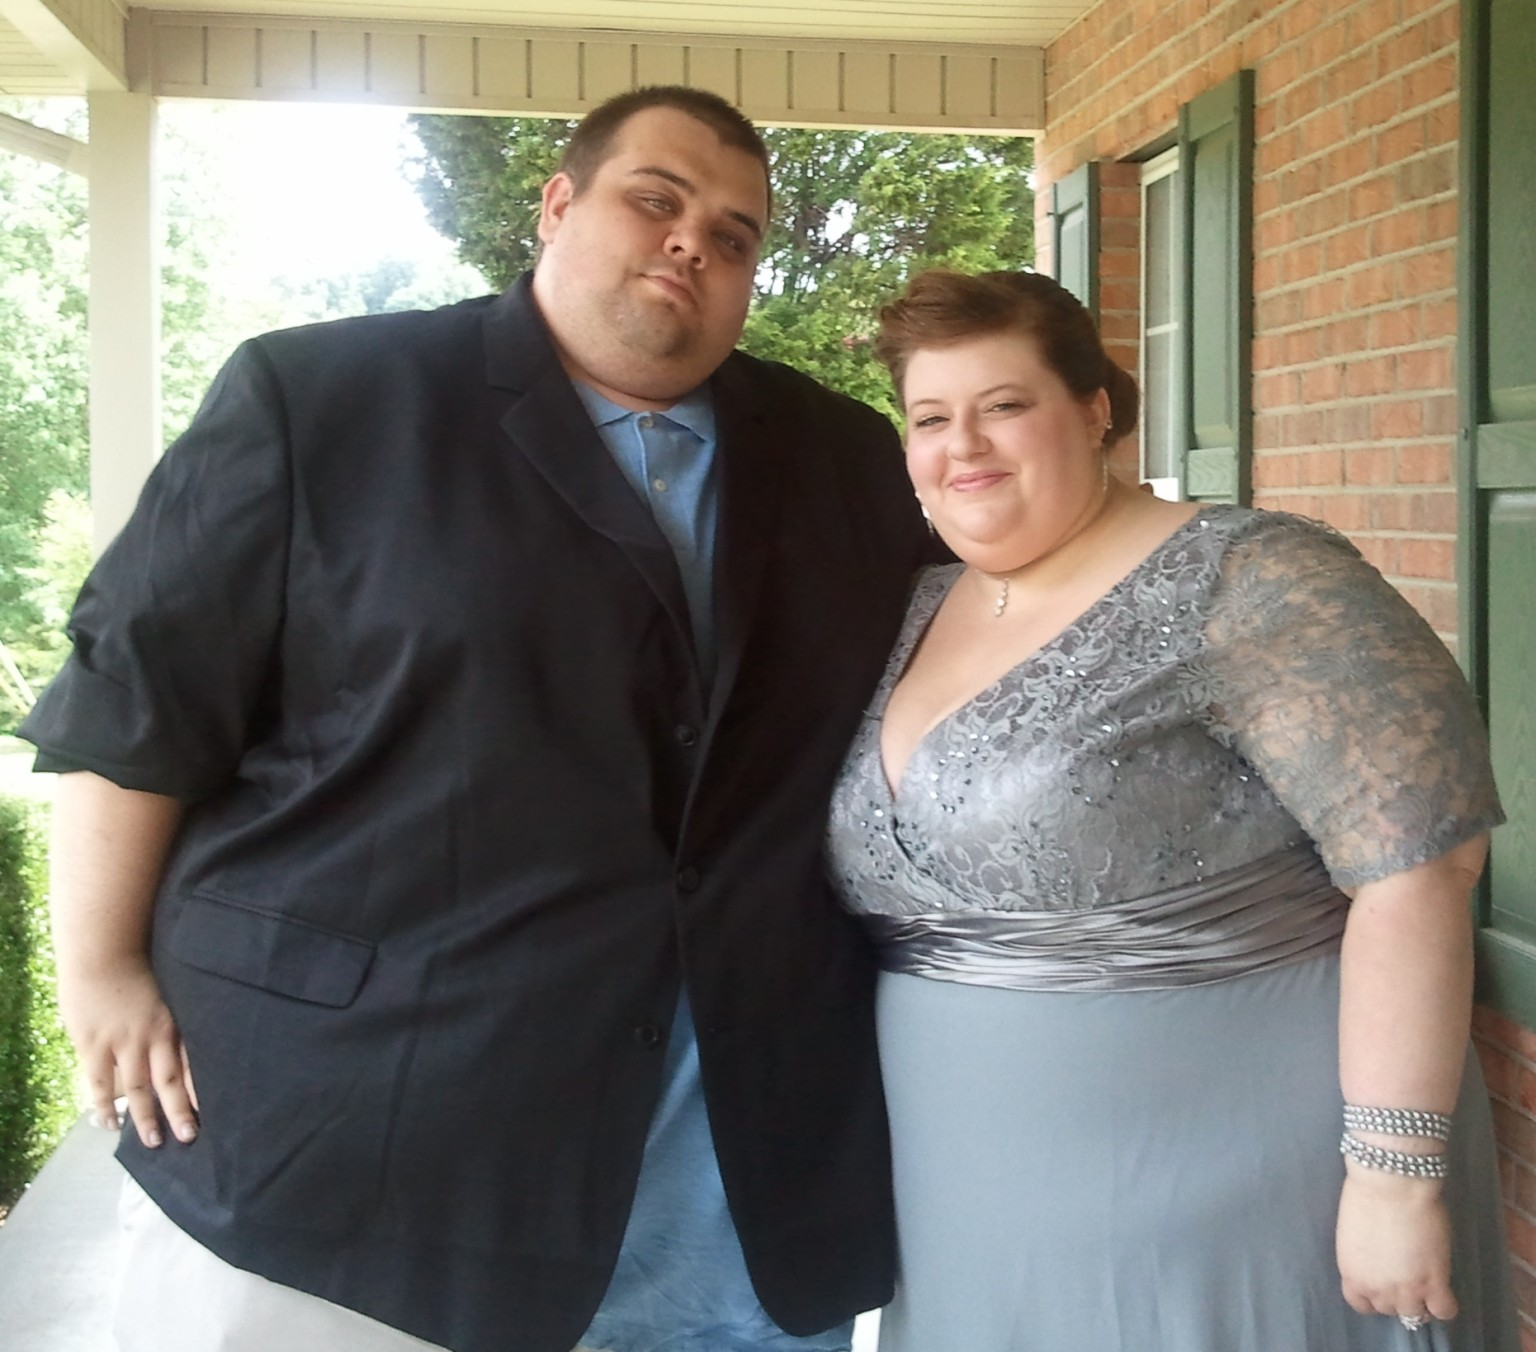 Image result for FAT COUPLES